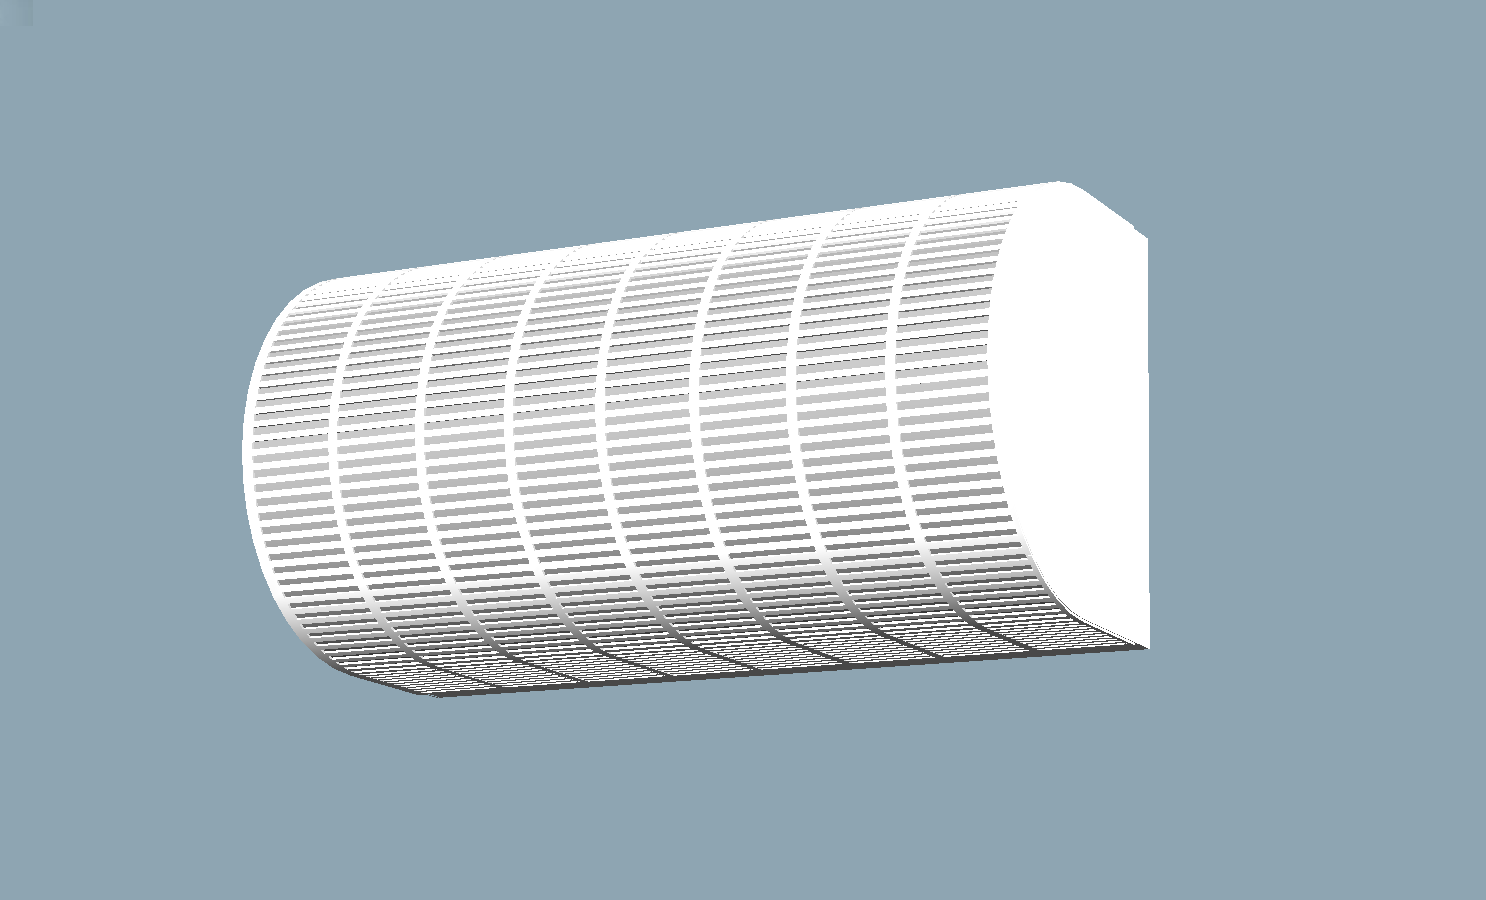 V1 - This elongated 300mm long wall-mounted fan draws in and filters up to 140m3/hr of outside air via a 100mm diameter duct. A double bedroom requires 60m3/hr ventilation and less for a single, while a living area of five people may require approximately 130m3/hr.The fan is quiet which is especially important in bedrooms. Its uniquely streamline design causes very little resistance to air leading to low torque and a significantly reduced power consumption of about 5.3W.